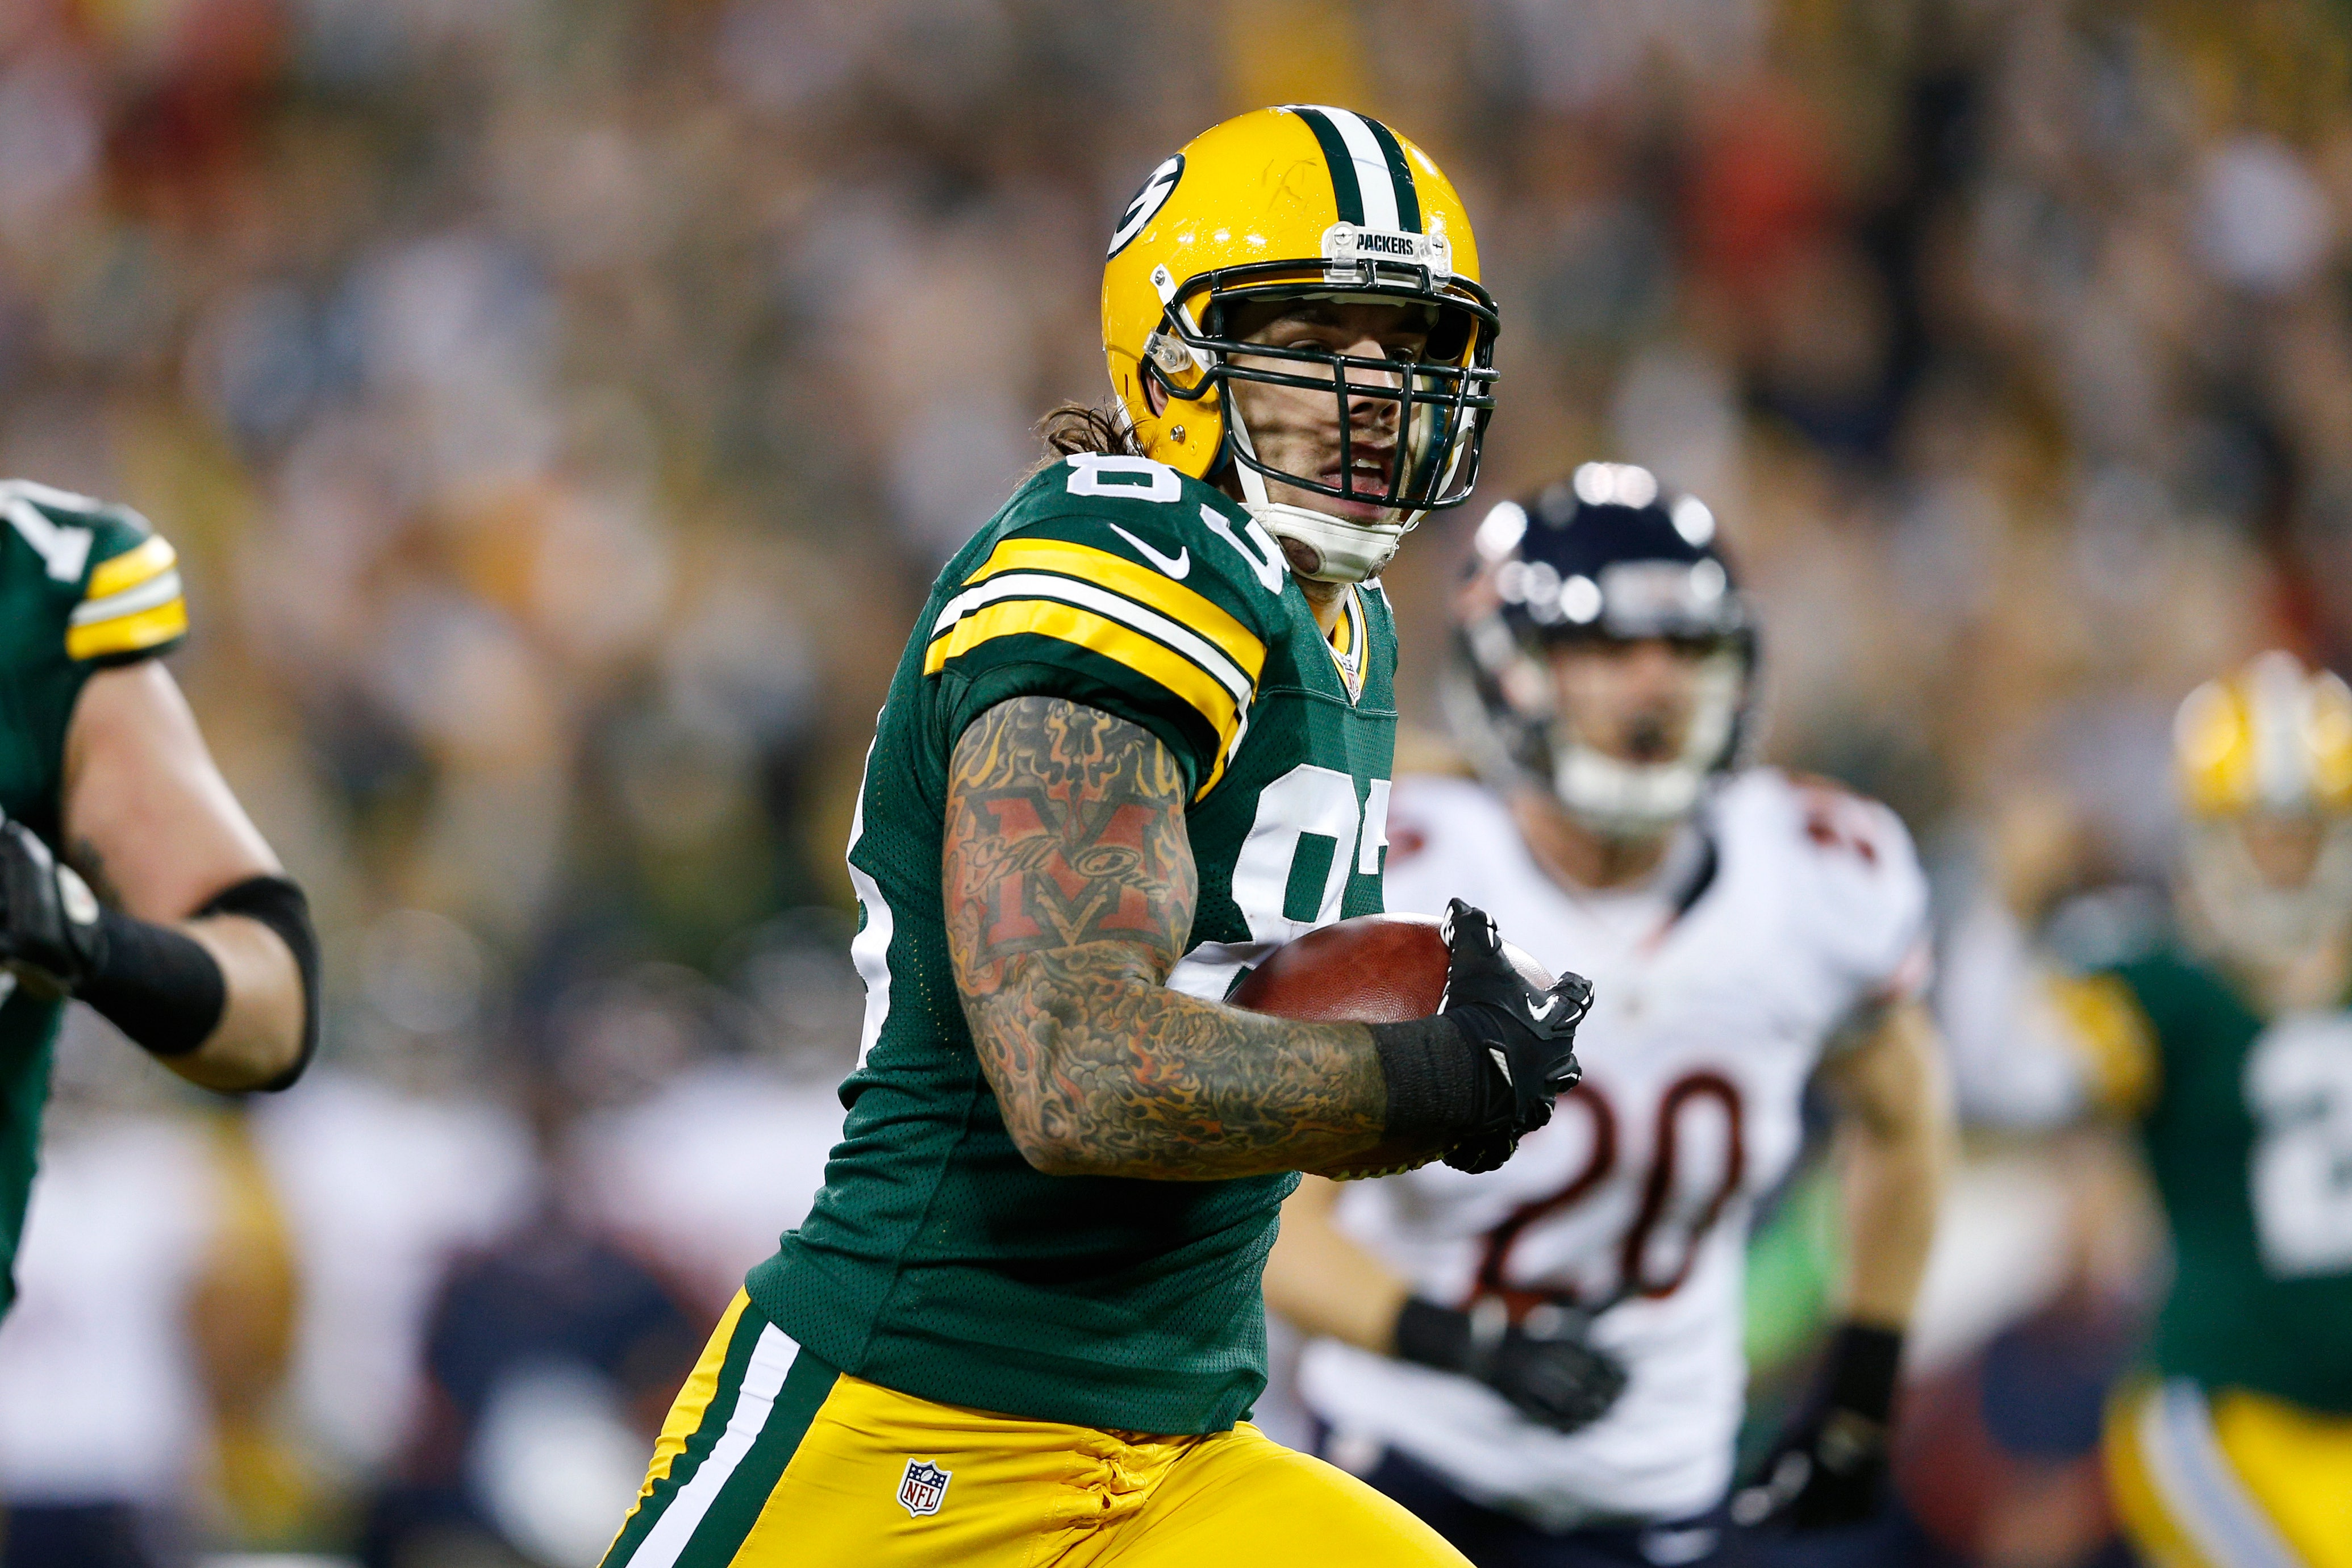 timeless design 1656b 8a909 Former Packers' tight end Tom Crabtree rips Colin Kaepernick ...